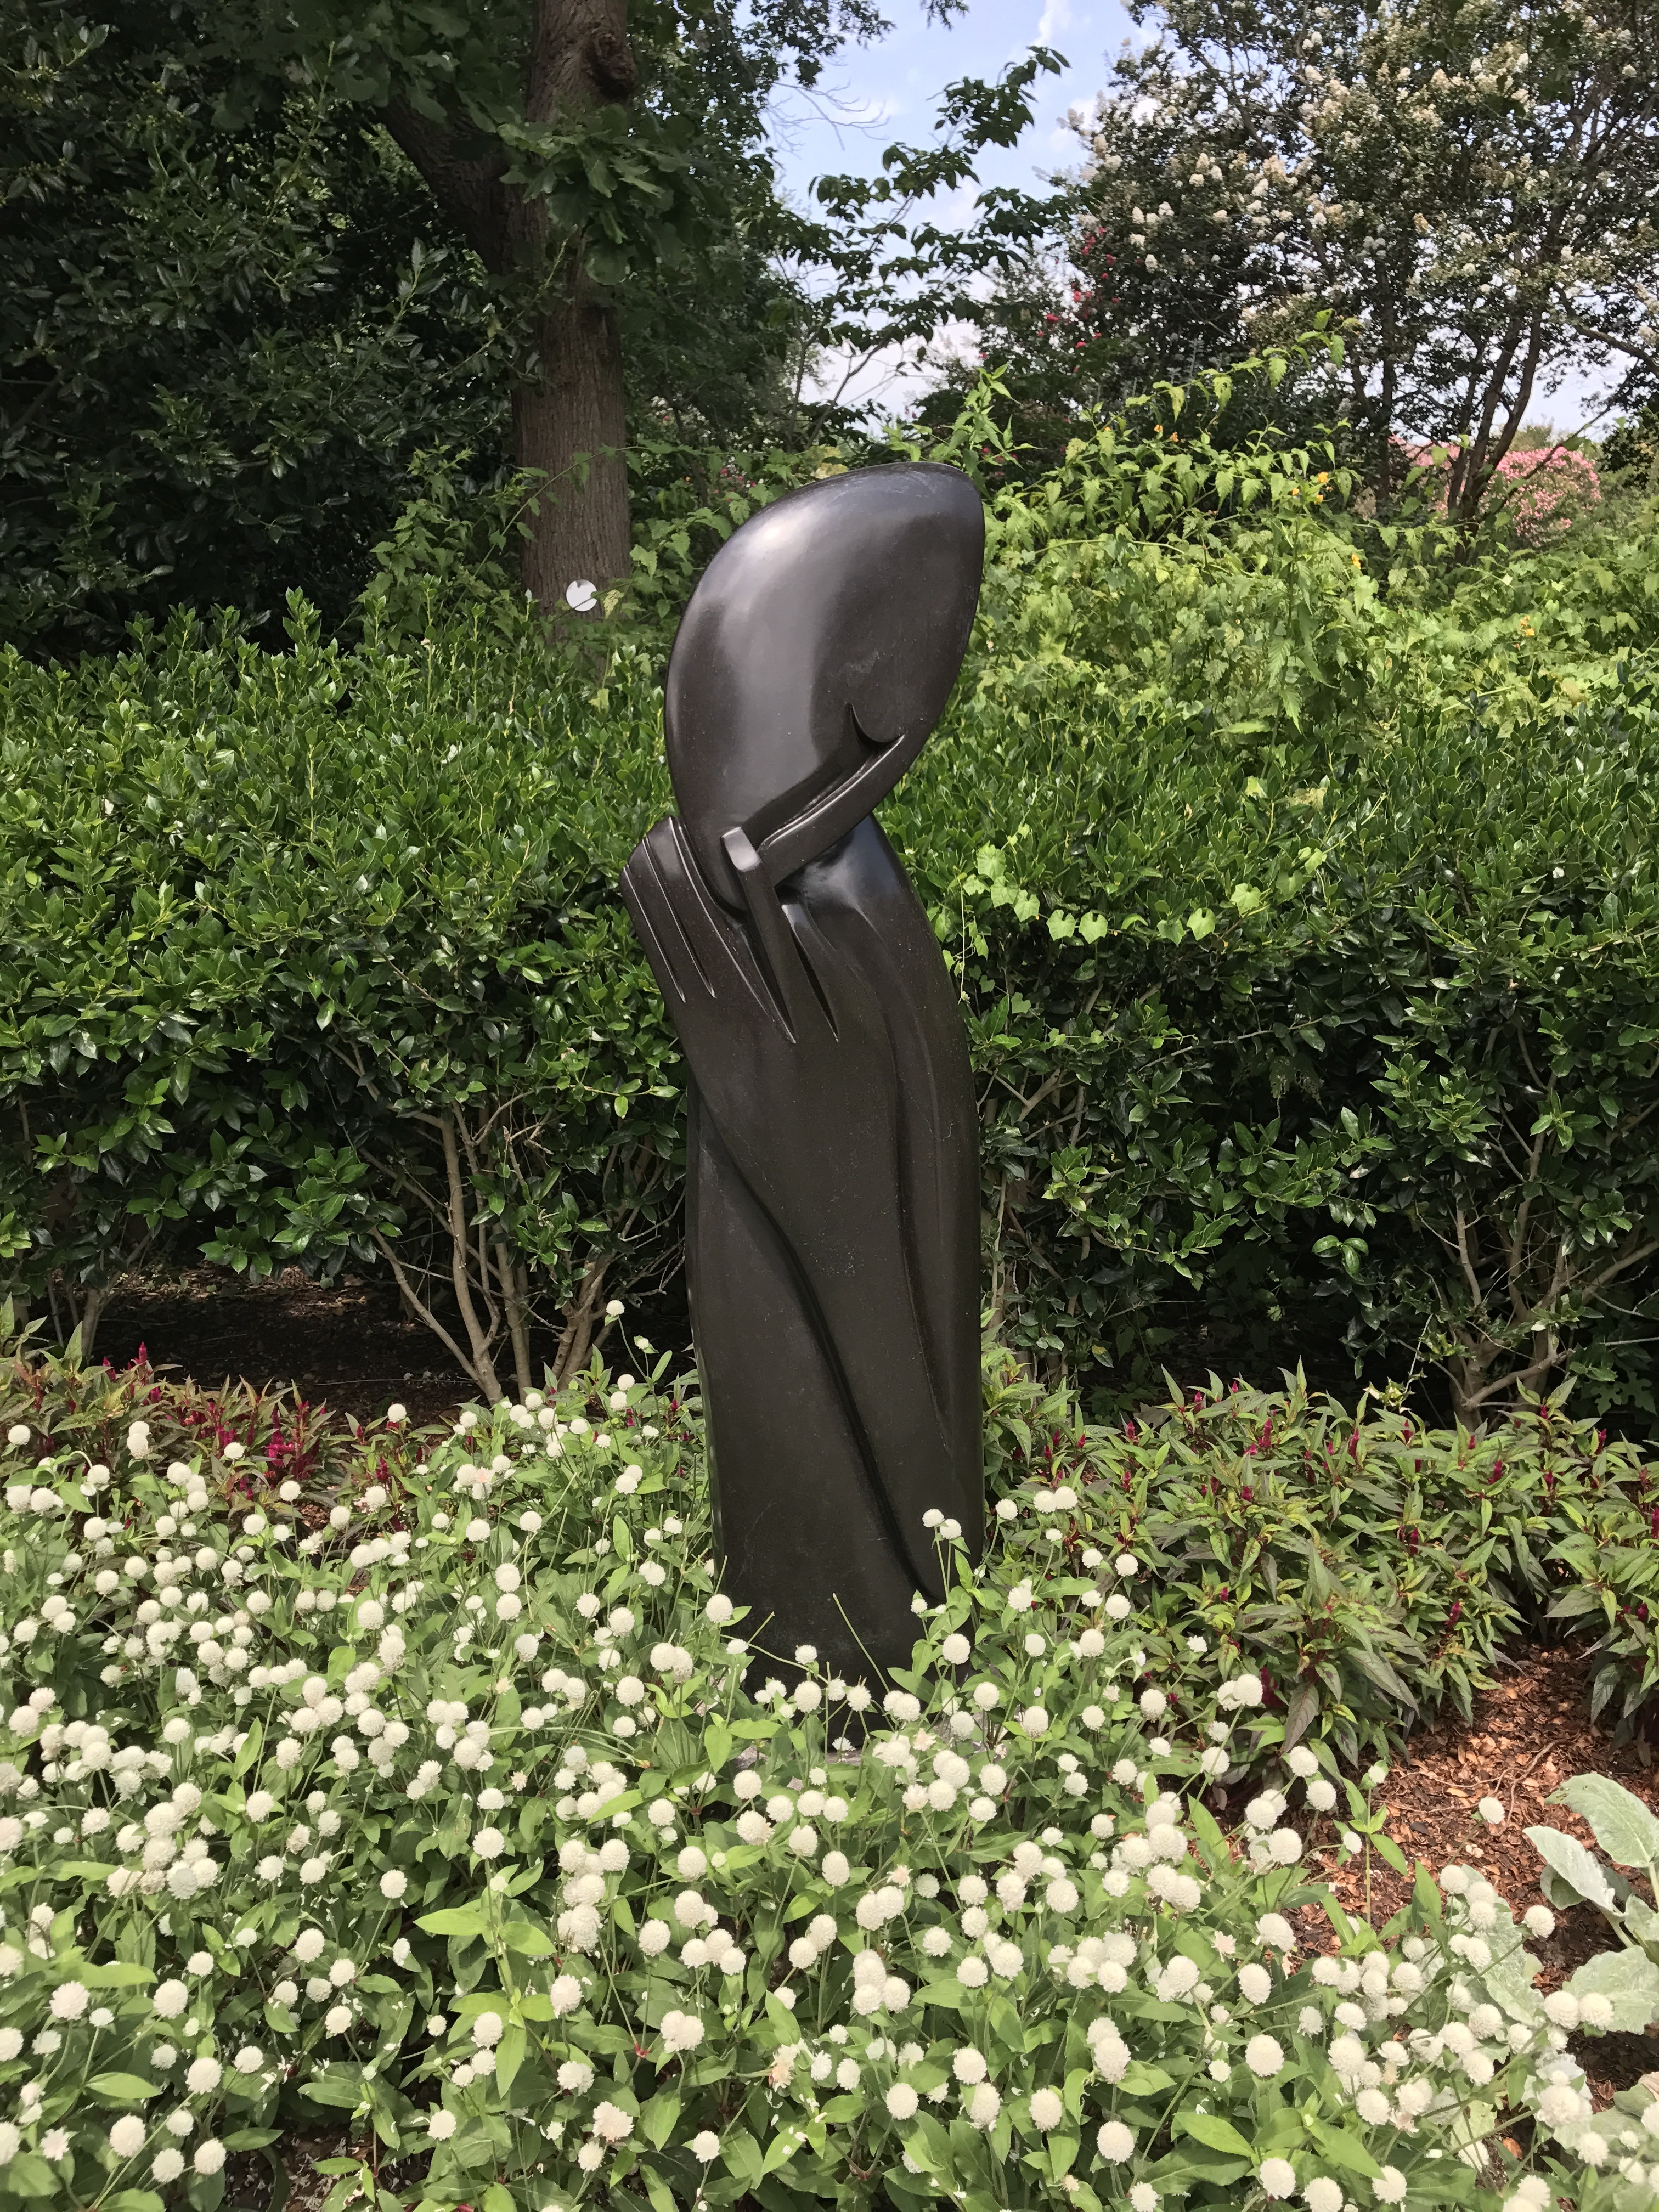 If You Havent Been To See ZimSculpt At The Dallas Arboretum And Botanical Garden Hurry Before Exhibition Ends July 31st